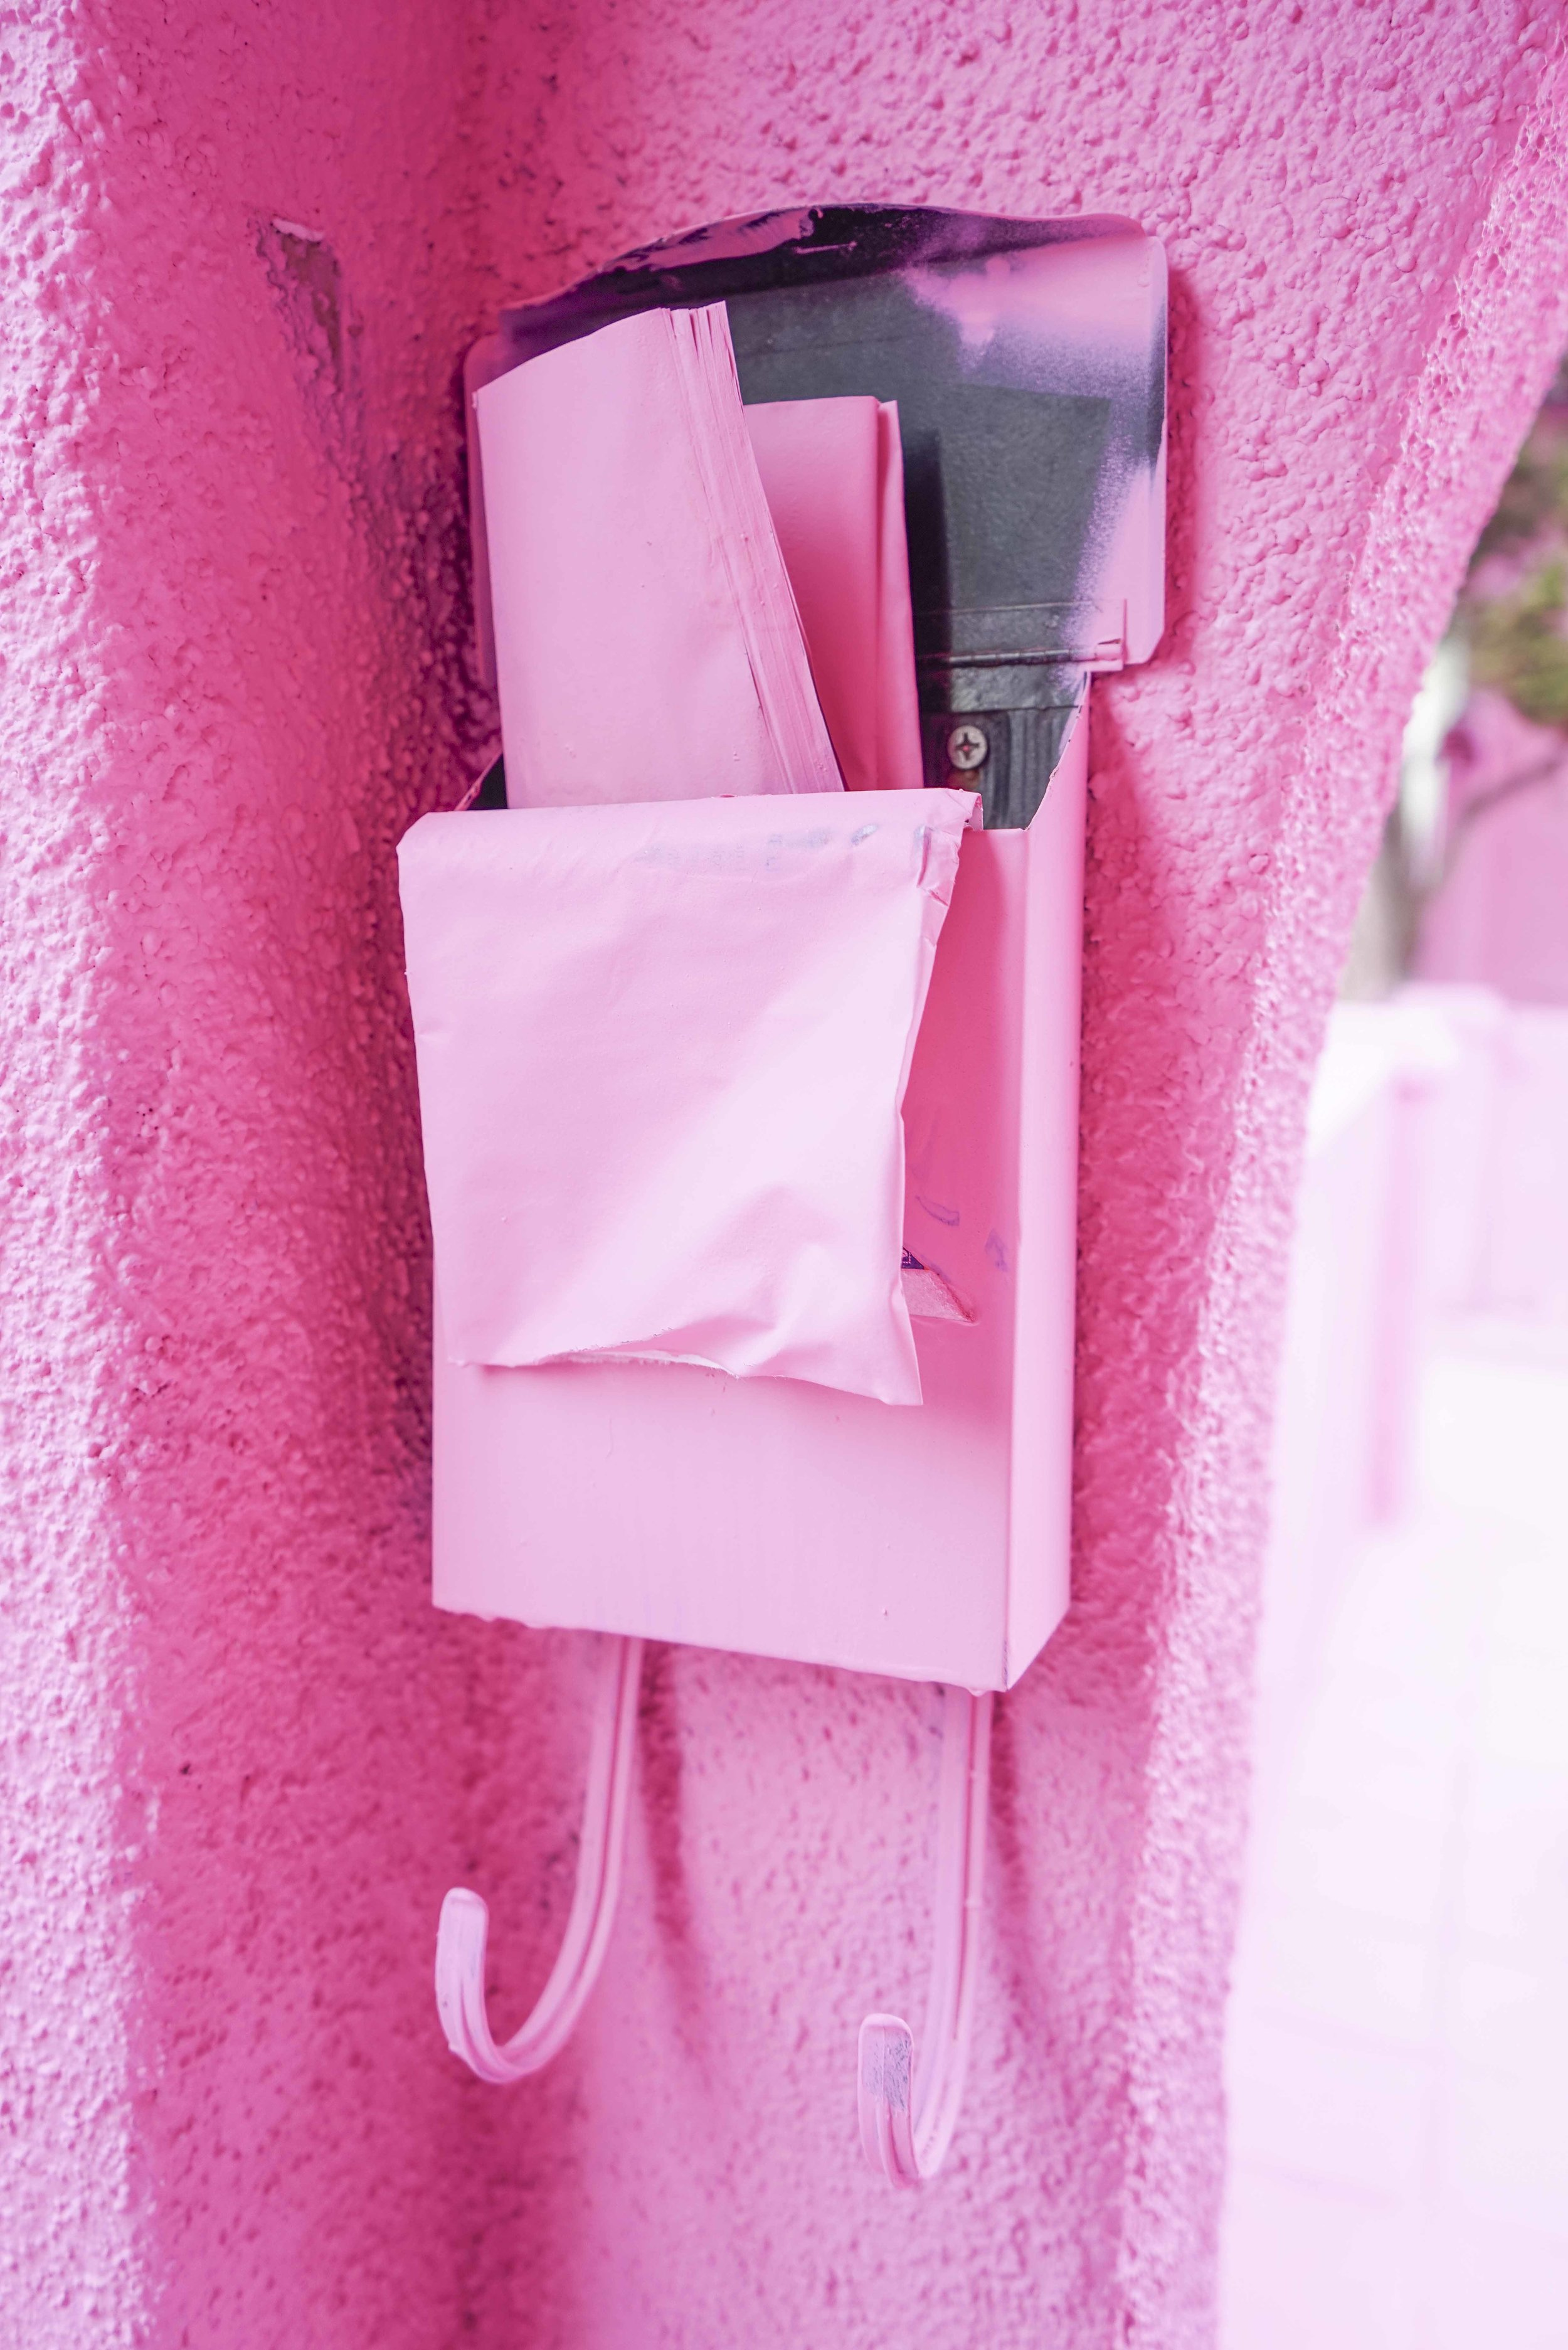 That Pink House | Los Angeles | Southern California | USA